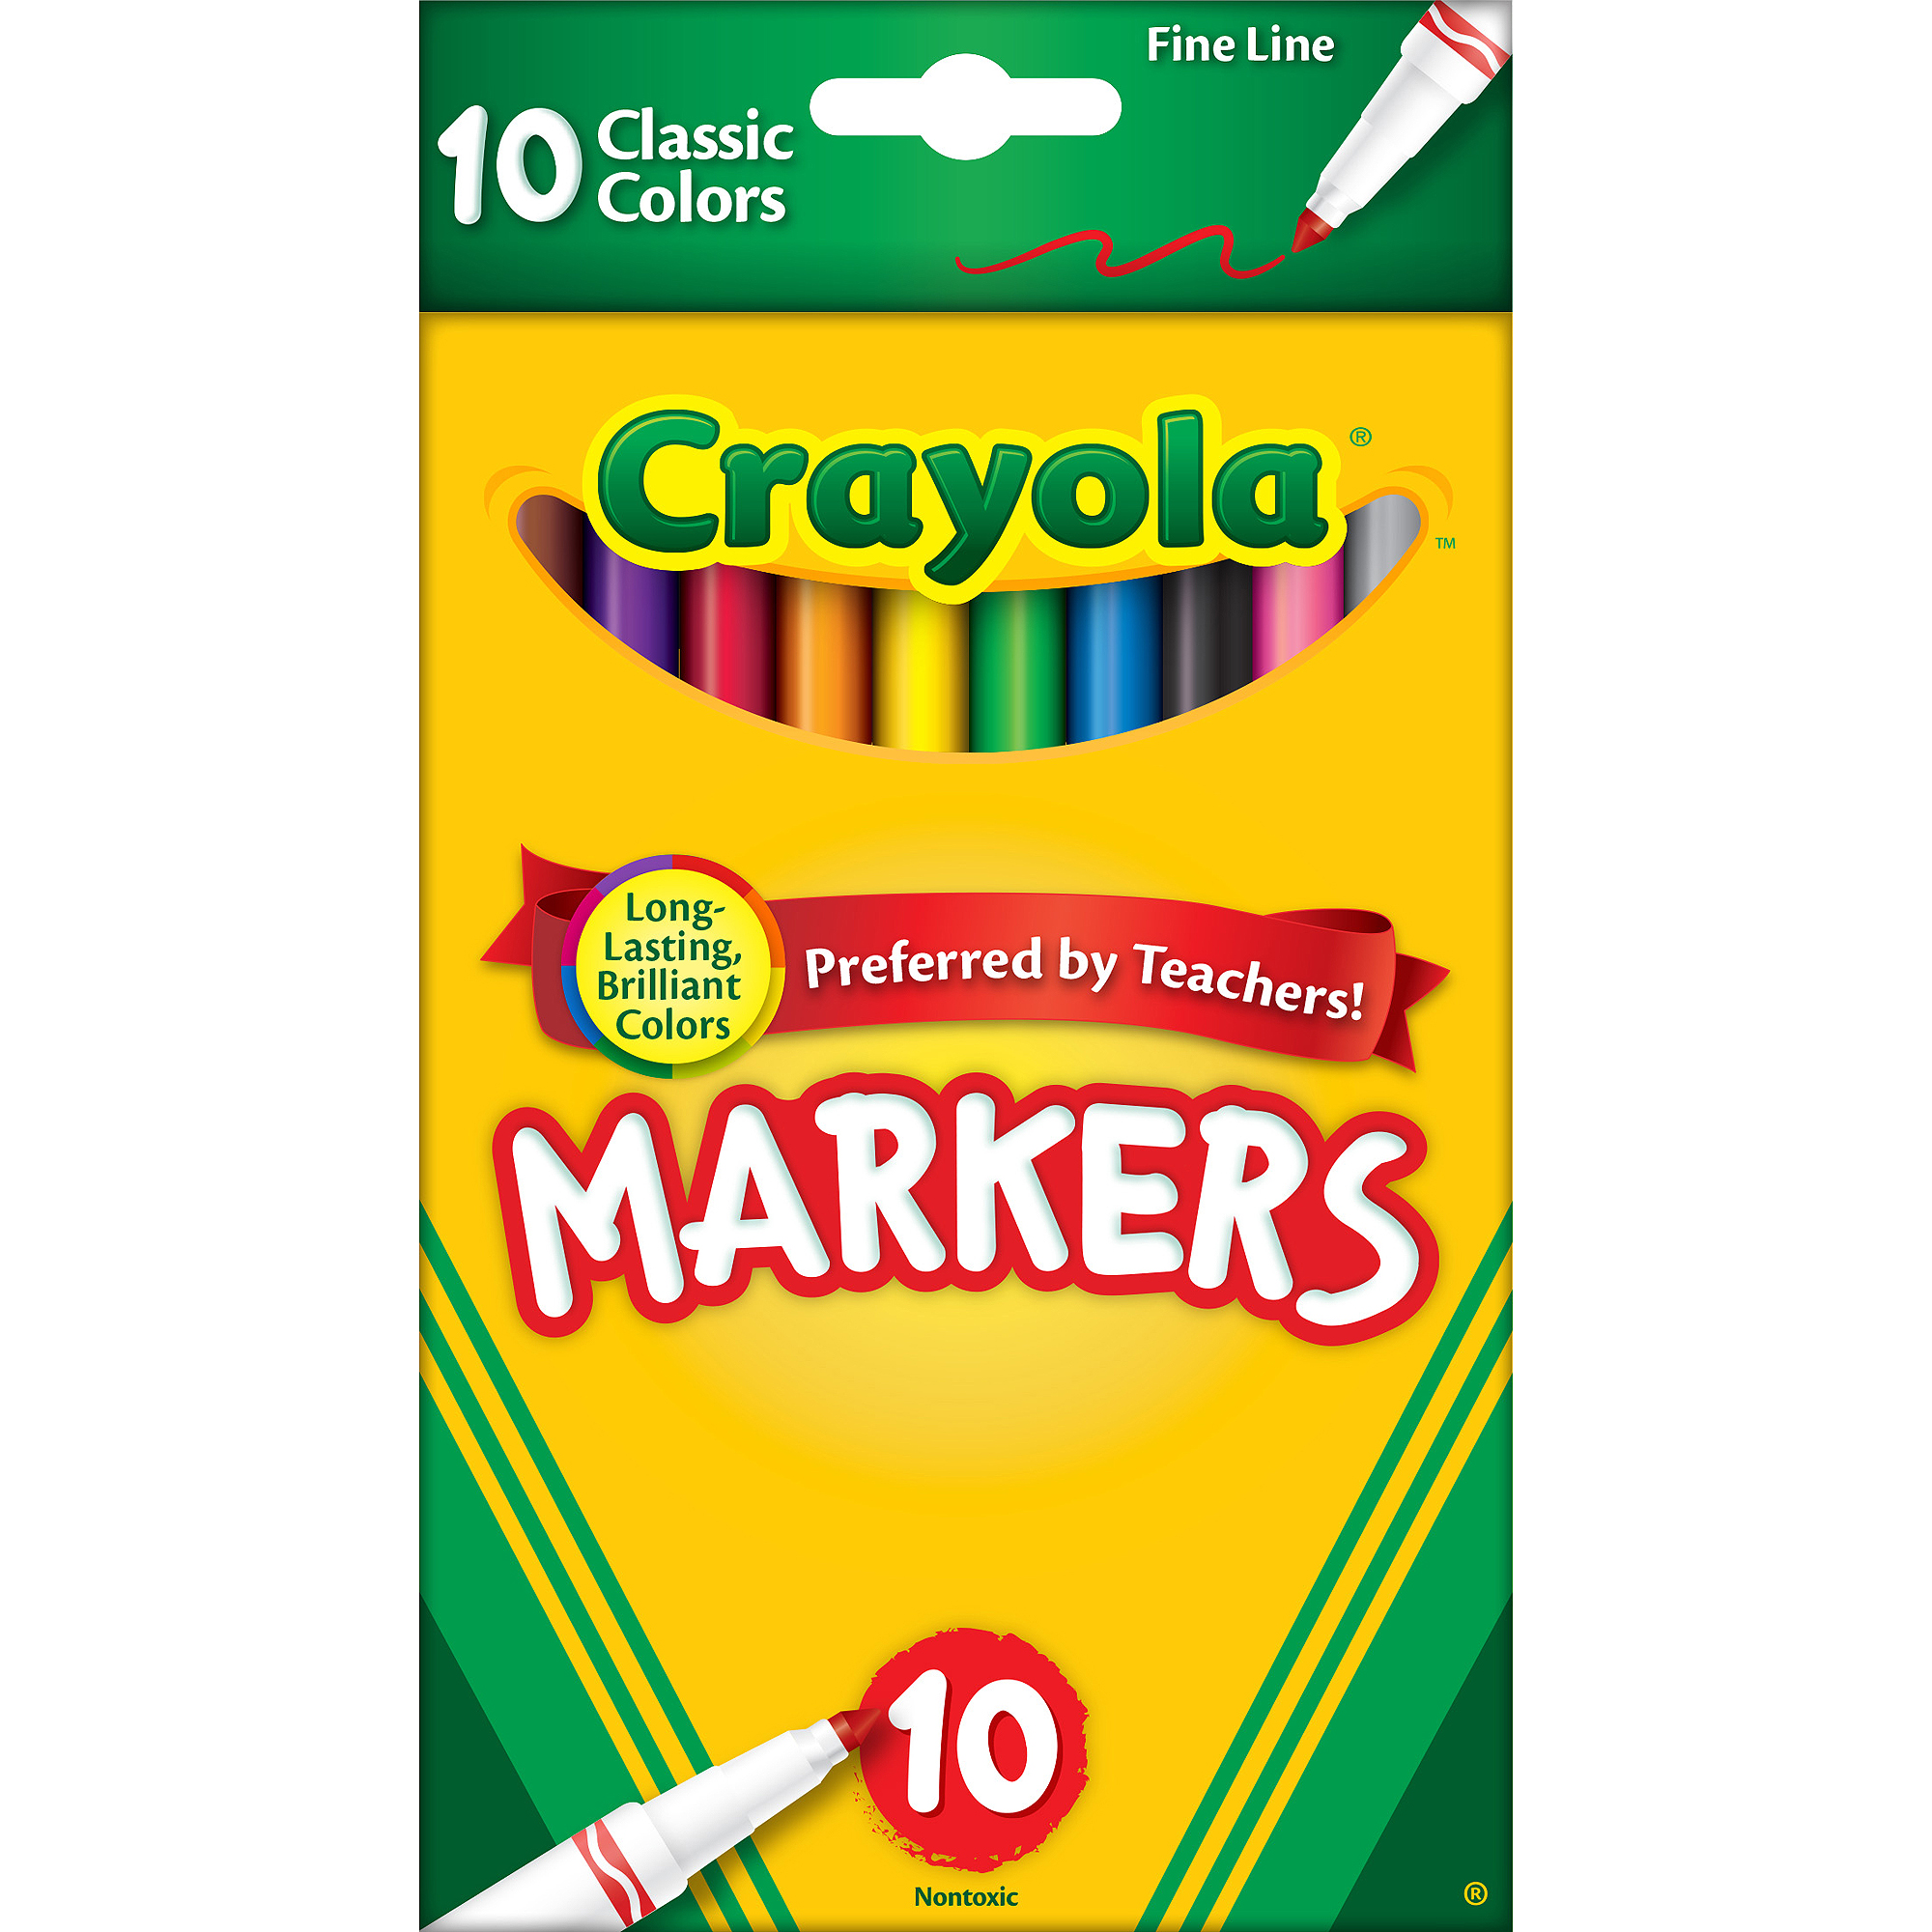 Crayola Classic Fine Line Markers, 10-Count by Crayola